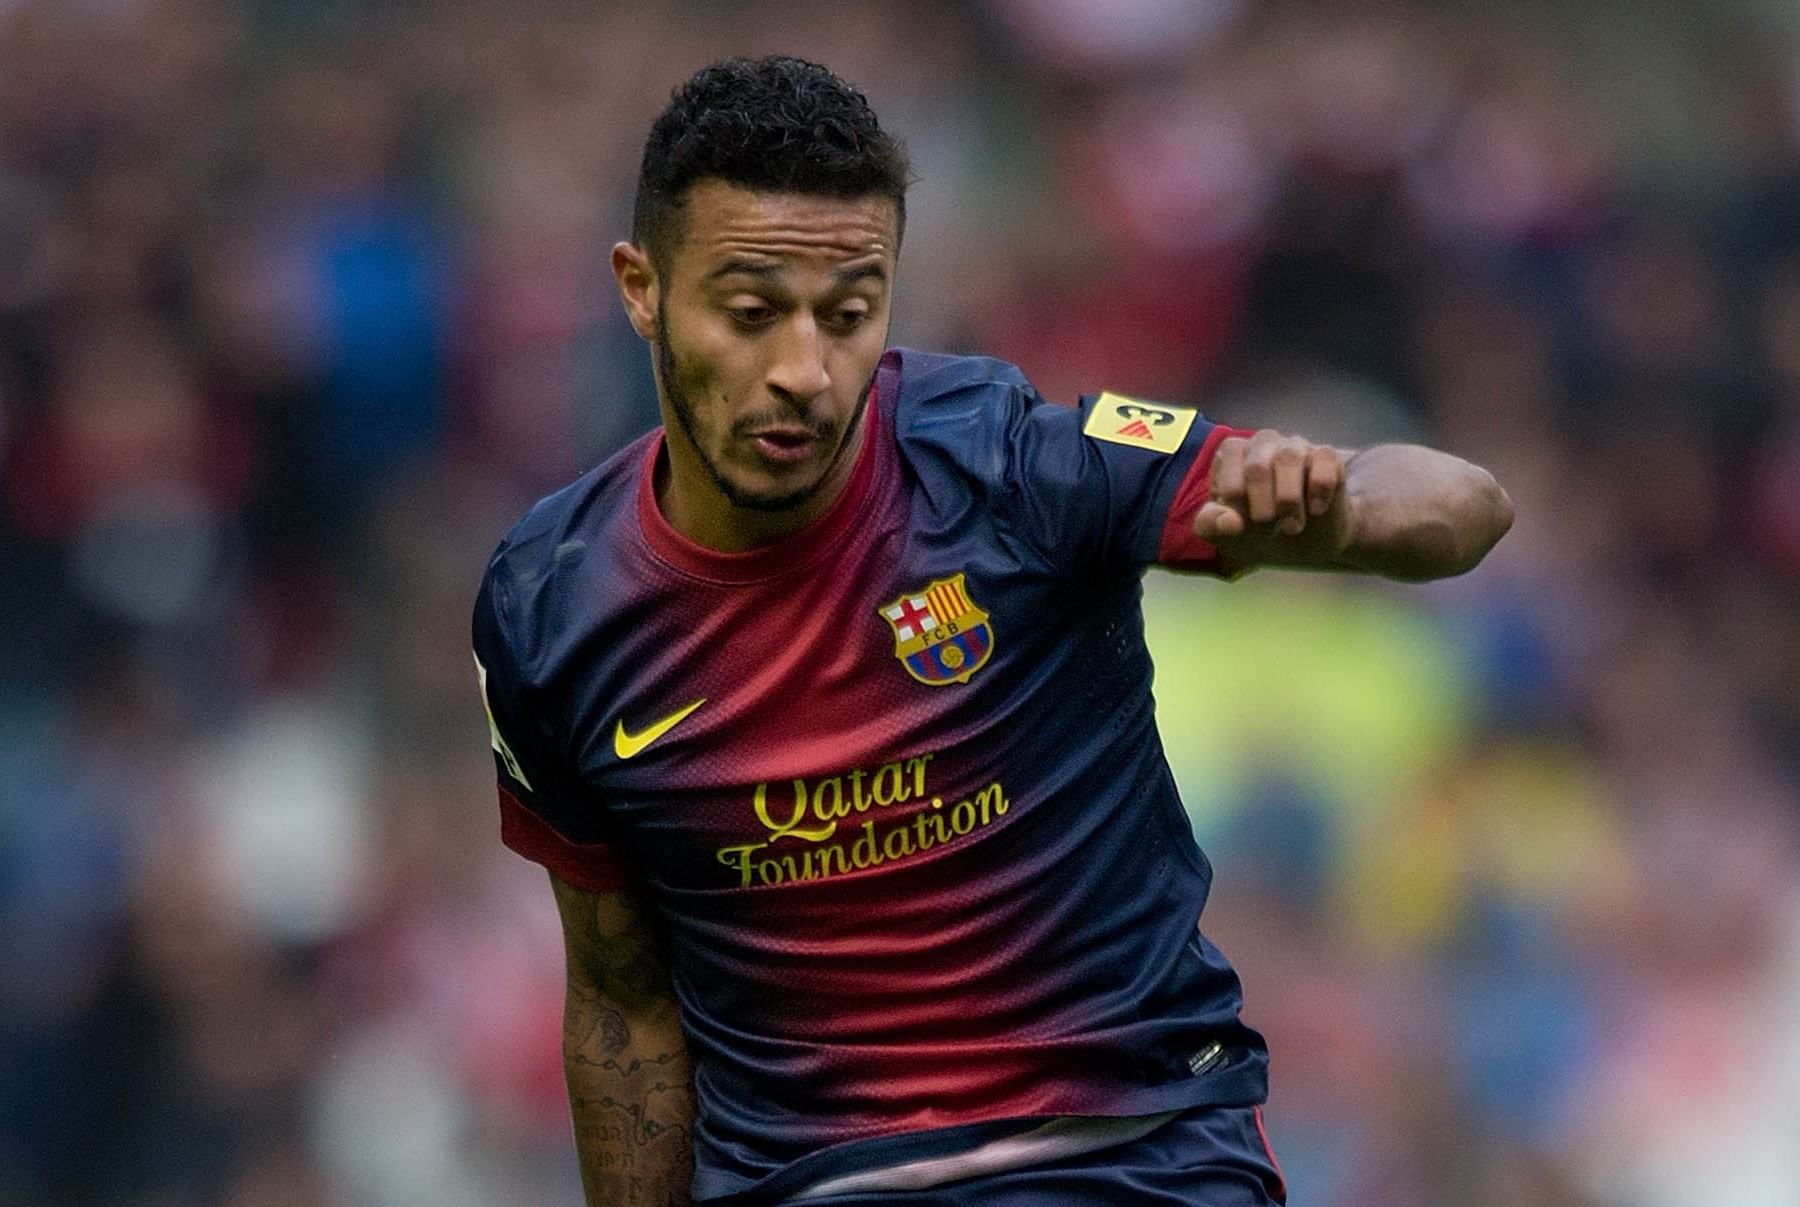 Manchester United can rule Europe once again with brilliant Thiago